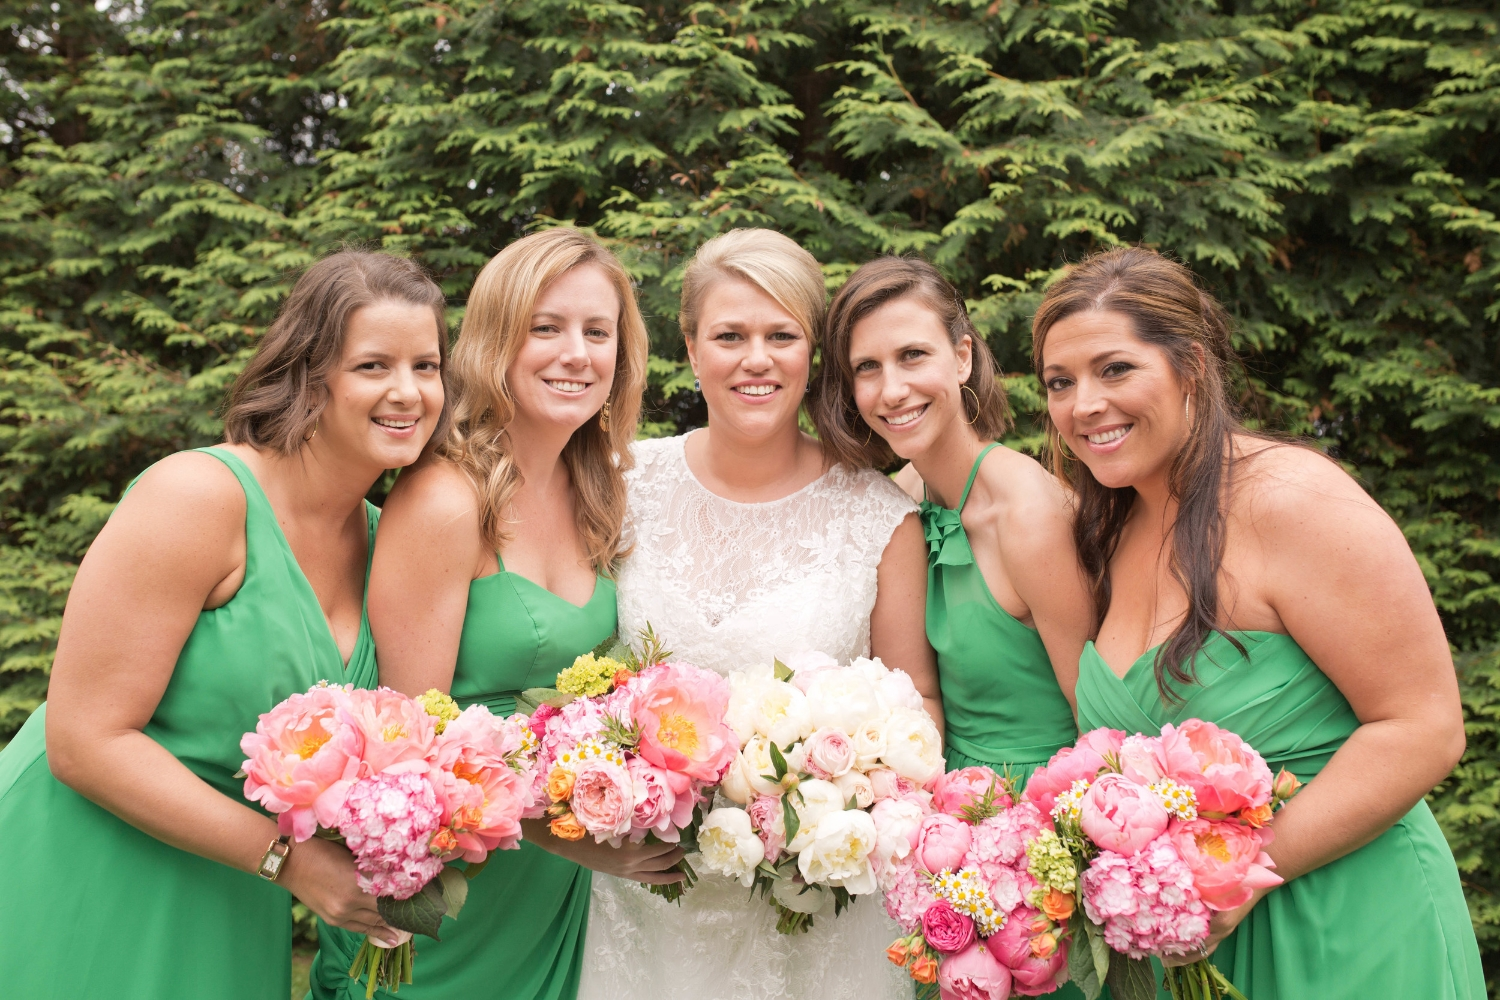 These bridesmaid dresses are all the same color, but all different designs. These are great if you have a bridal party with girls of all different shapes!